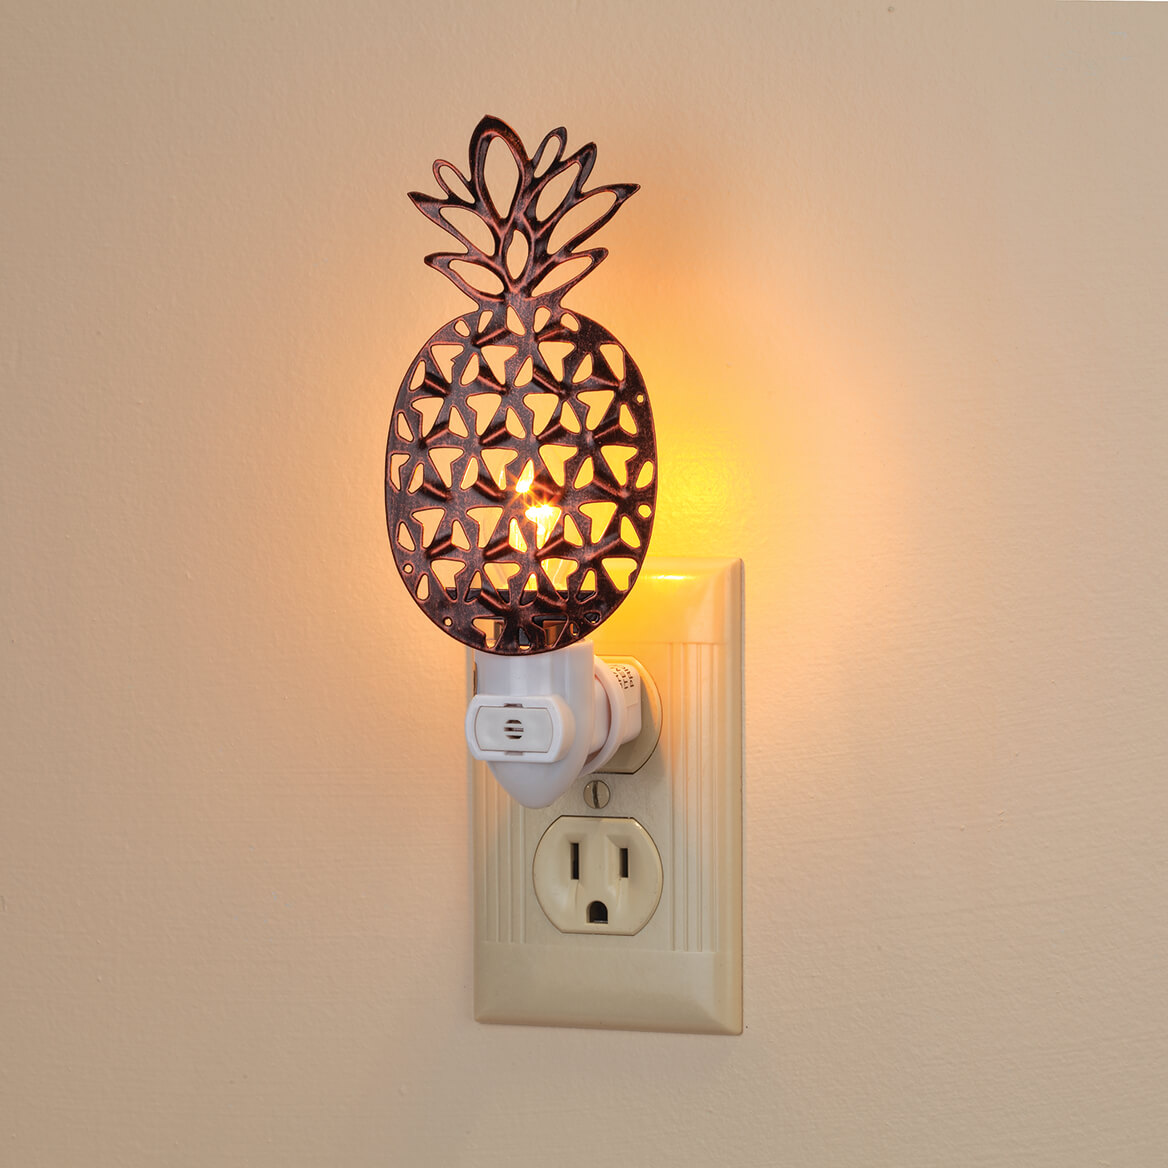 Decorative Metal Nightlight-369626